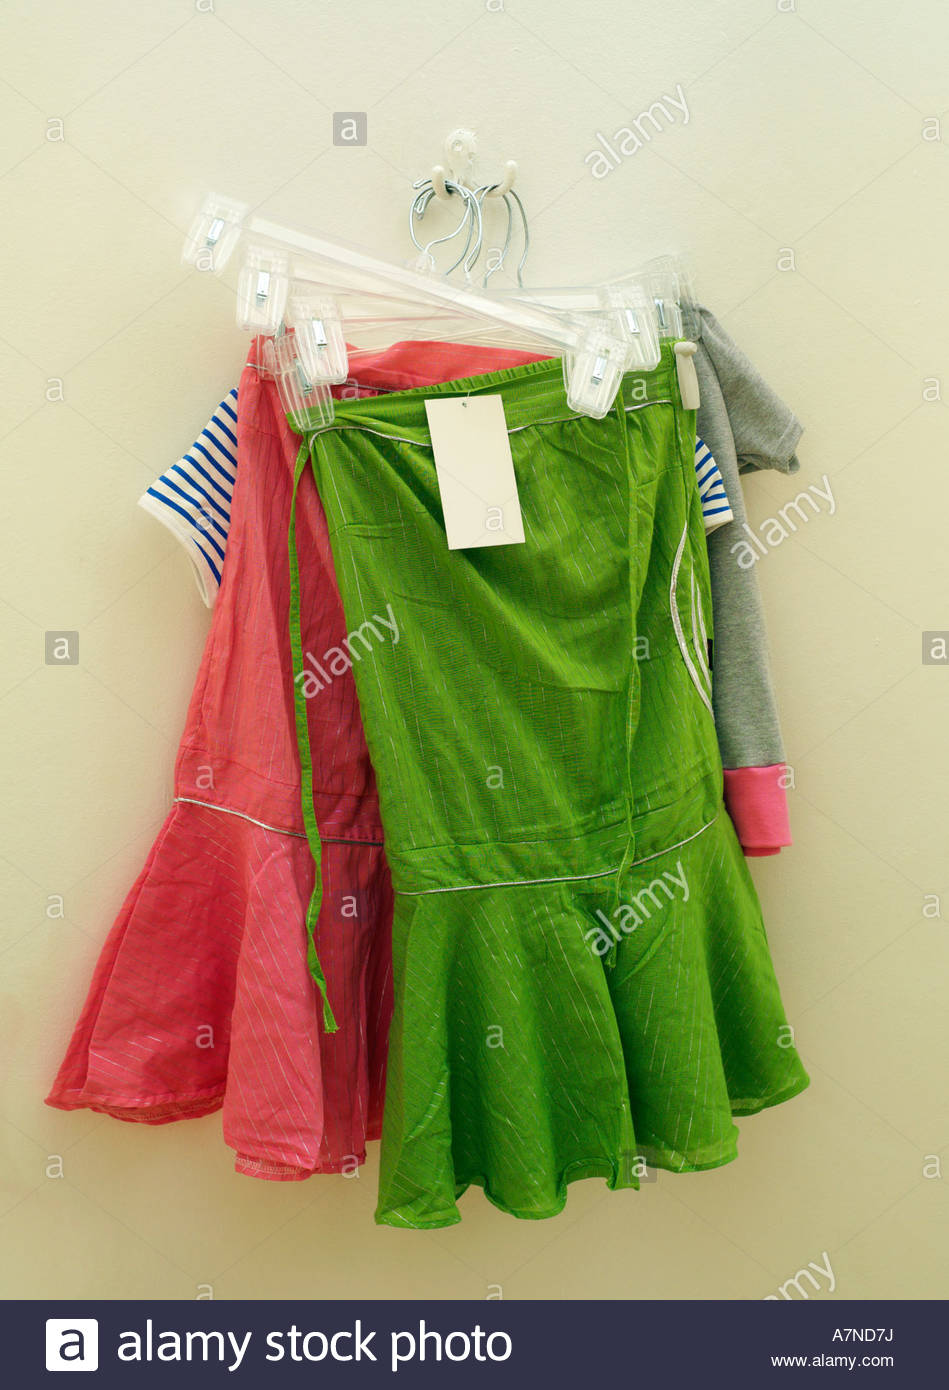 New green and pink skirts hanging on coathanger price tag attached close up - Stock Image